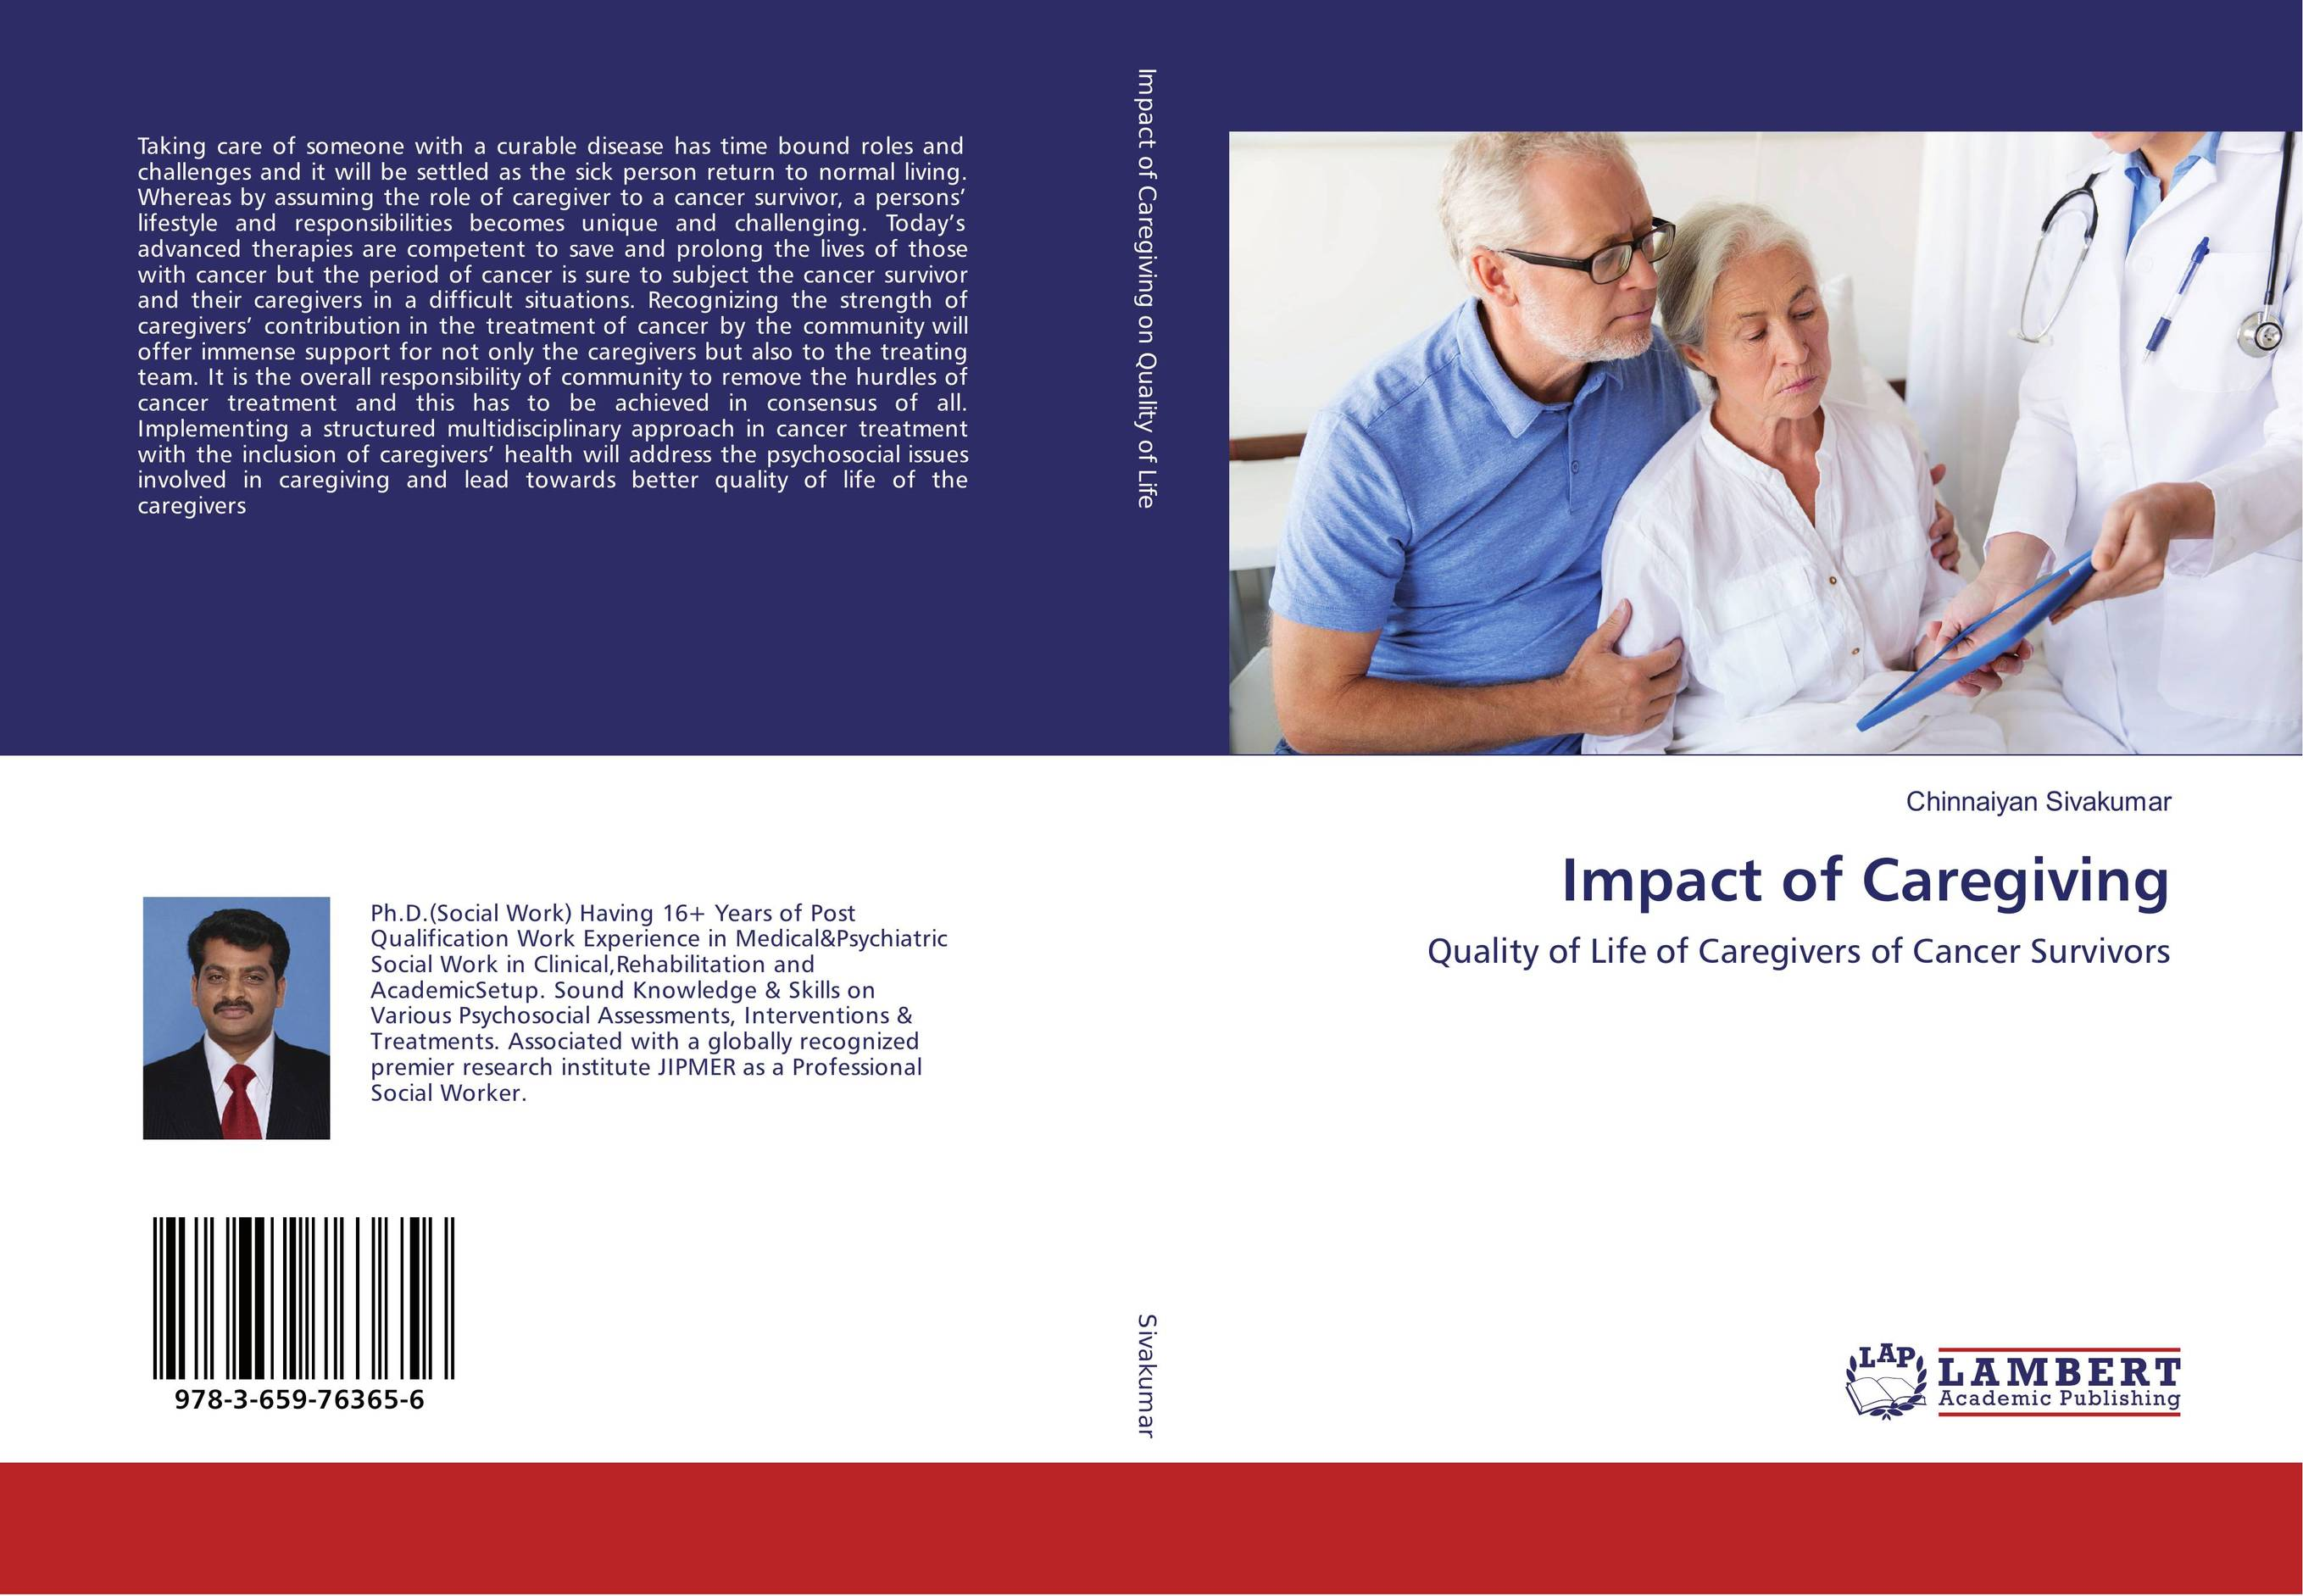 Impact of Caregiving family caregiving in the new normal